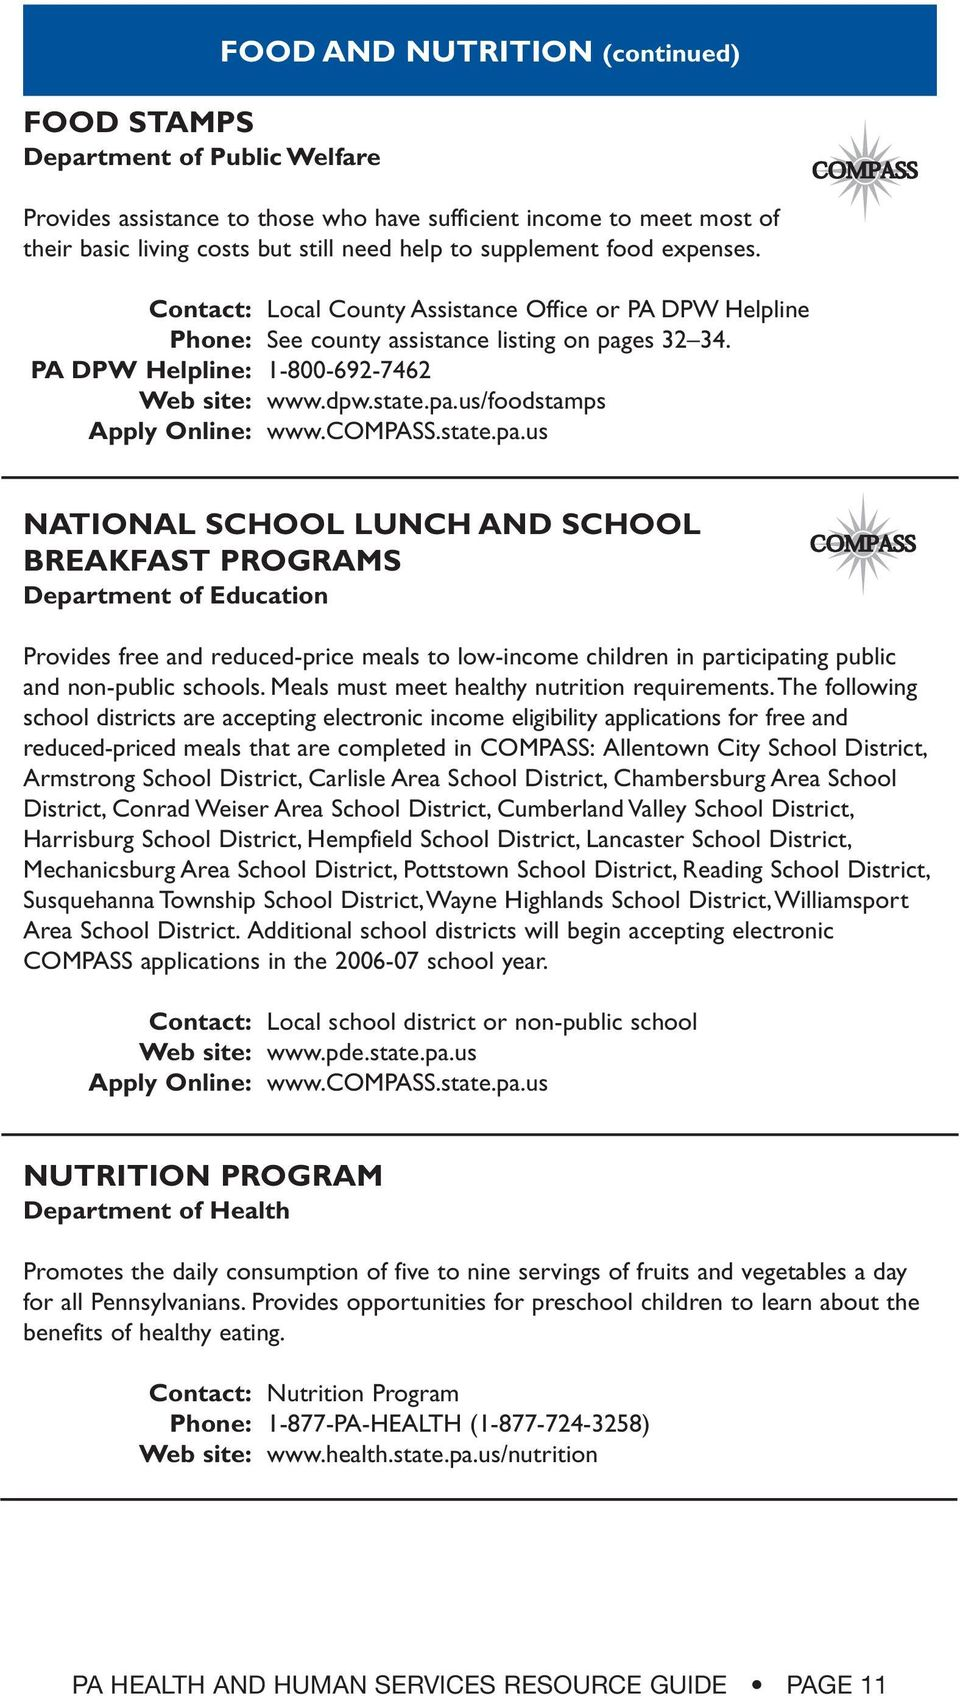 compass.state.pa.us NATIONAL SCHOOL LUNCH AND SCHOOL BREAKFAST PROGRAMS Department of Education Provides free and reduced-price meals to low-income children in participating public and non-public schools.